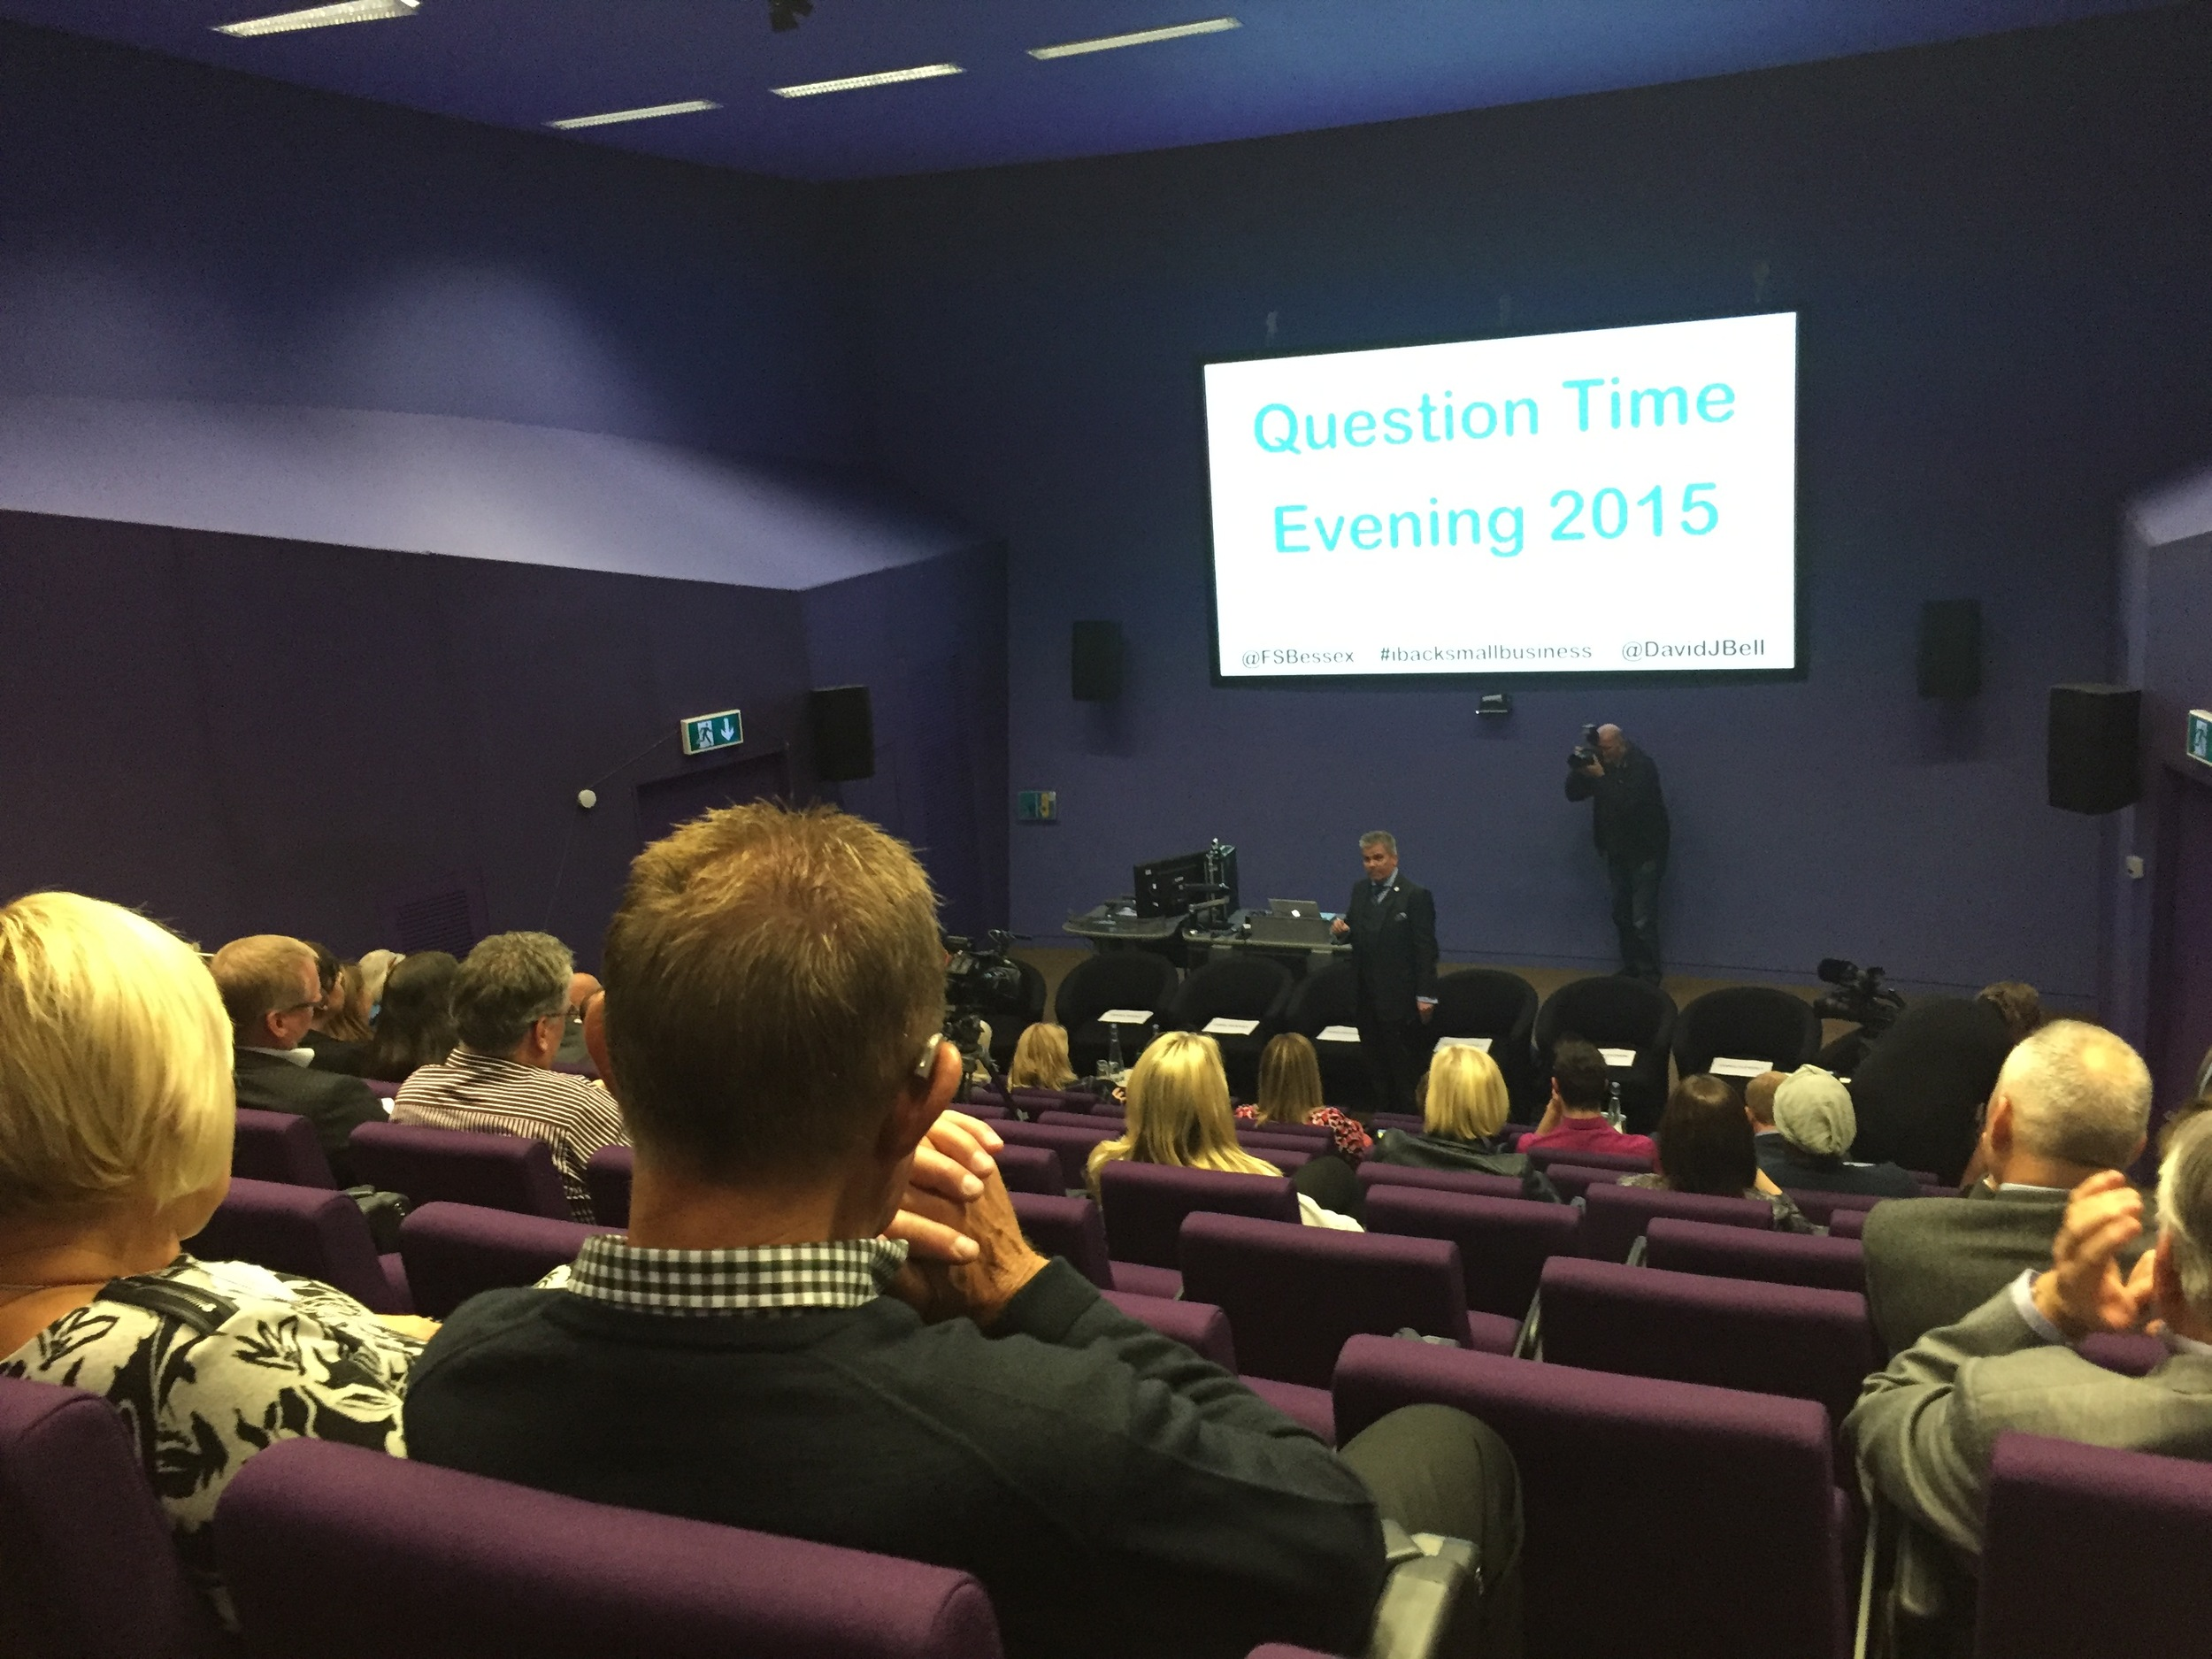 QuestionTime audience getting ready